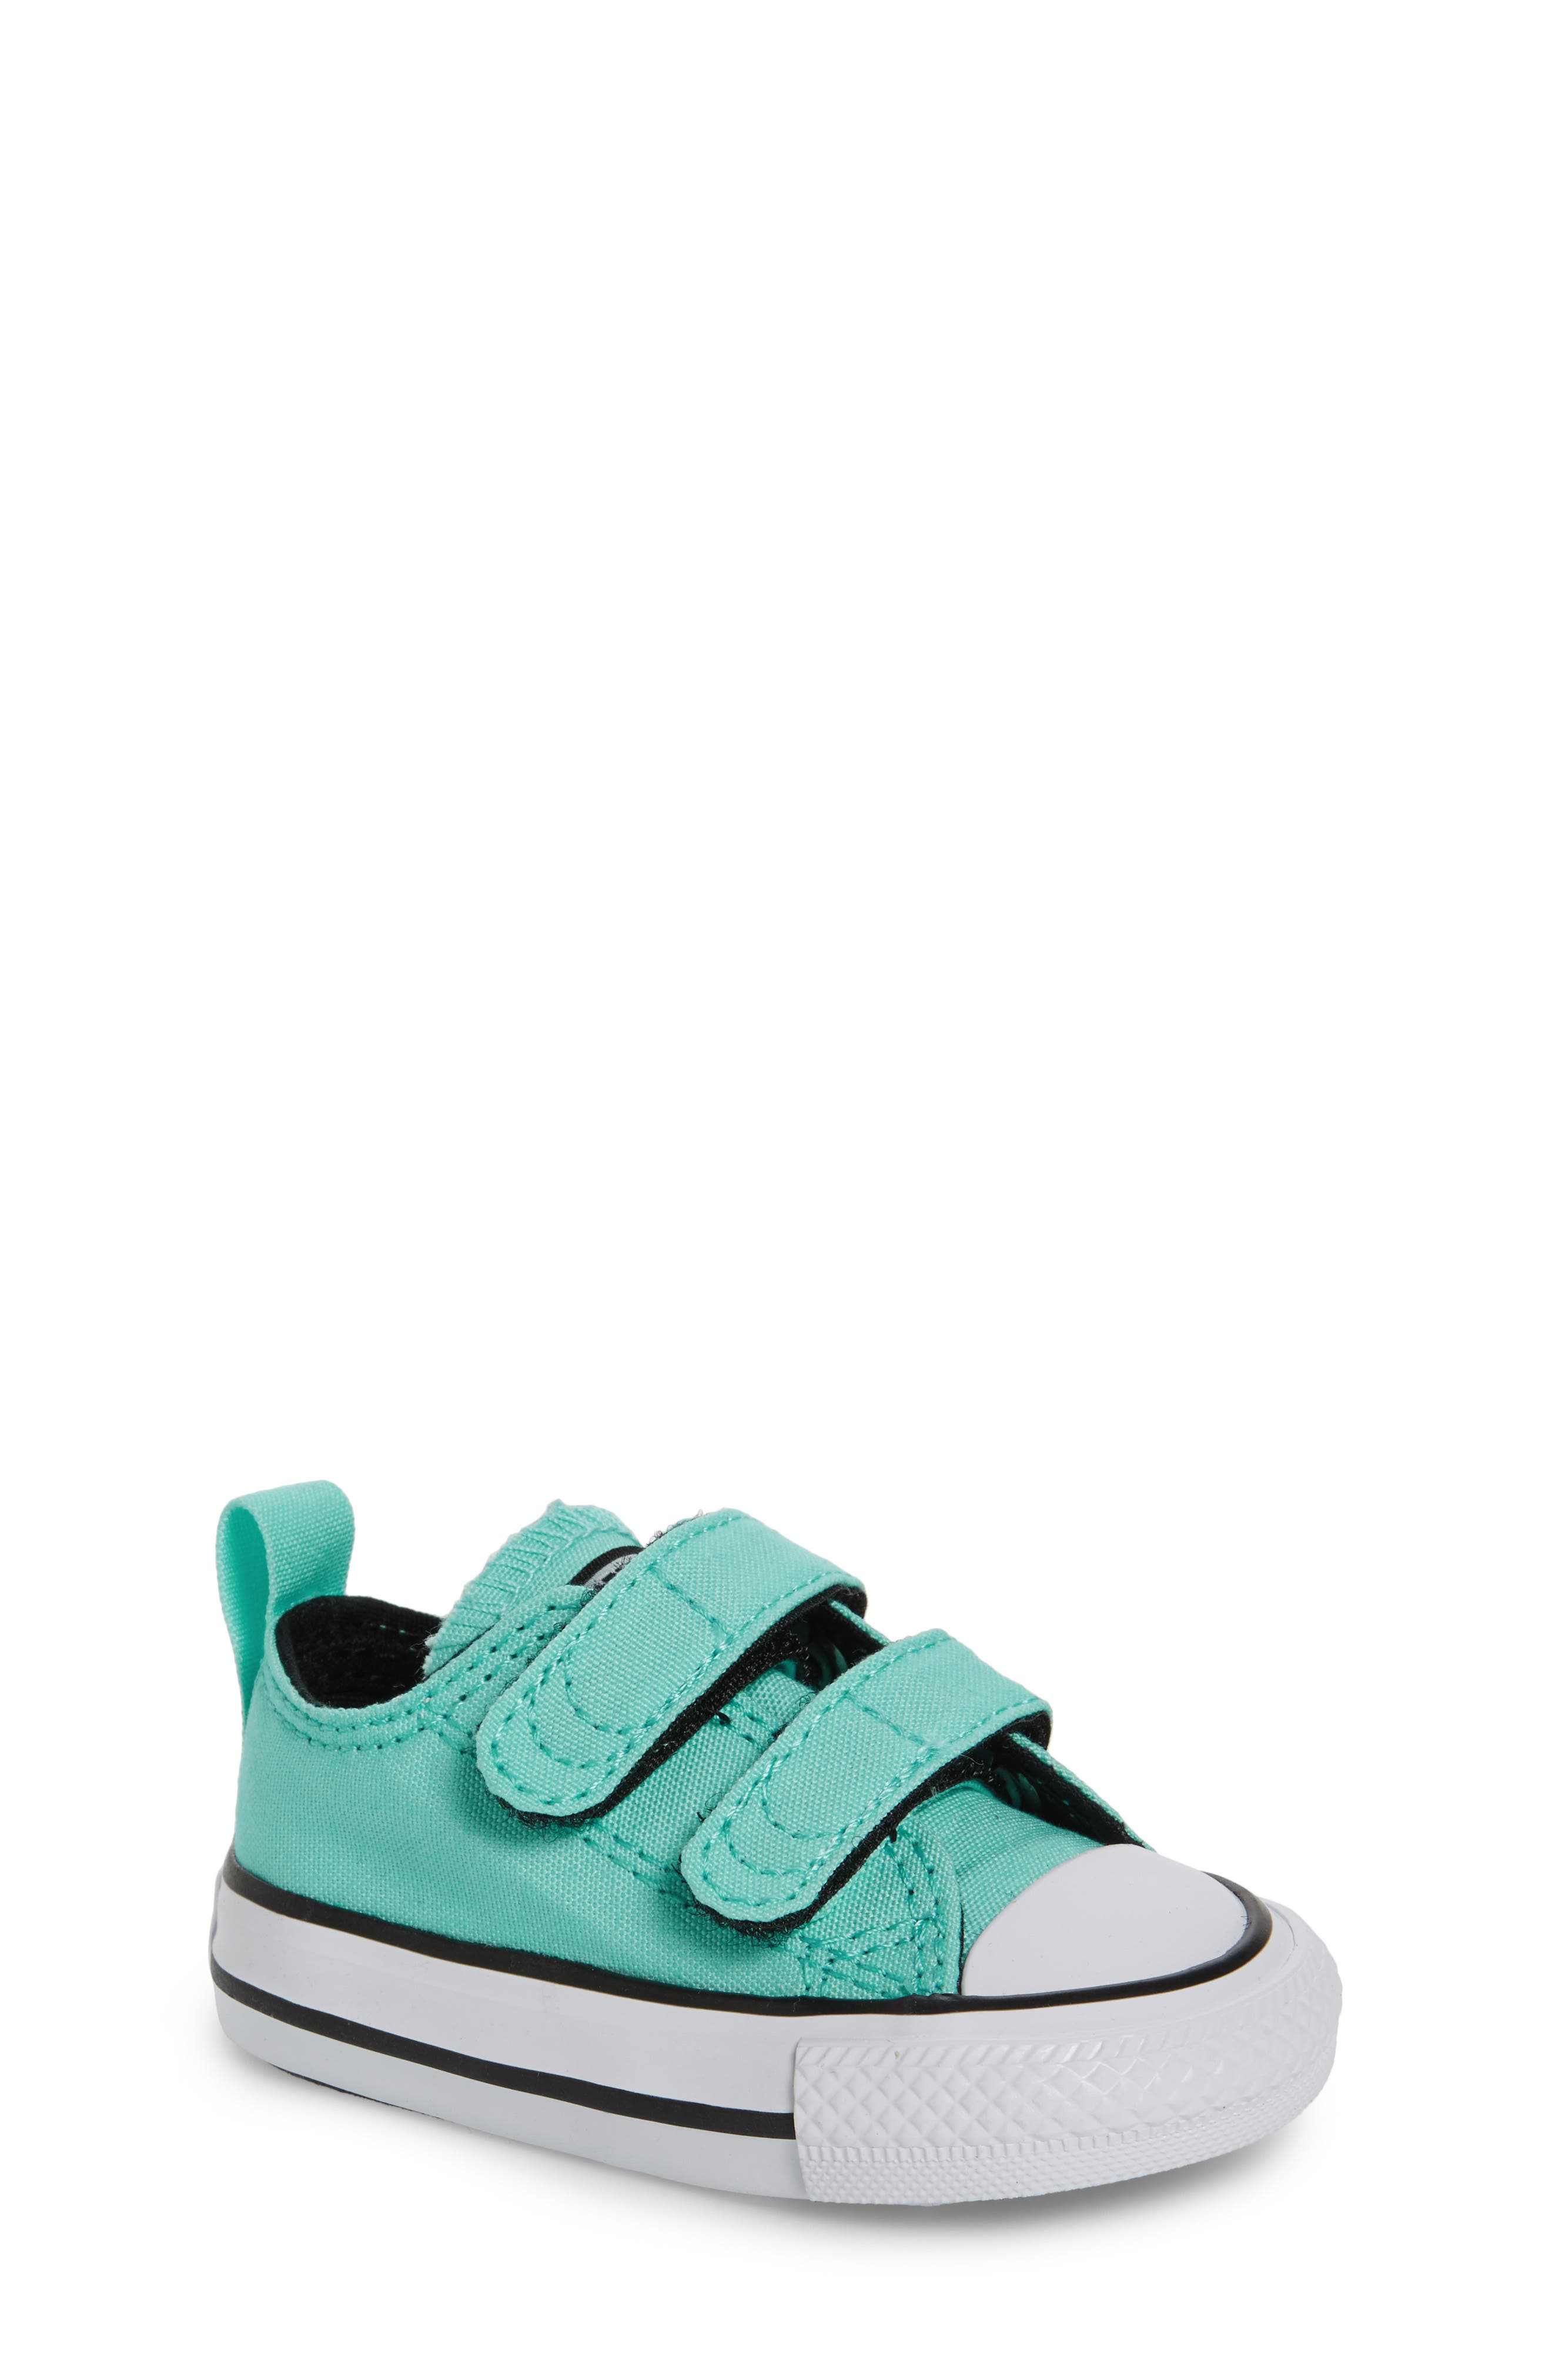 Chuck Taylor<sup>®</sup> All Star<sup>®</sup> 2V Low-Top Sneaker,                         Main,                         color,